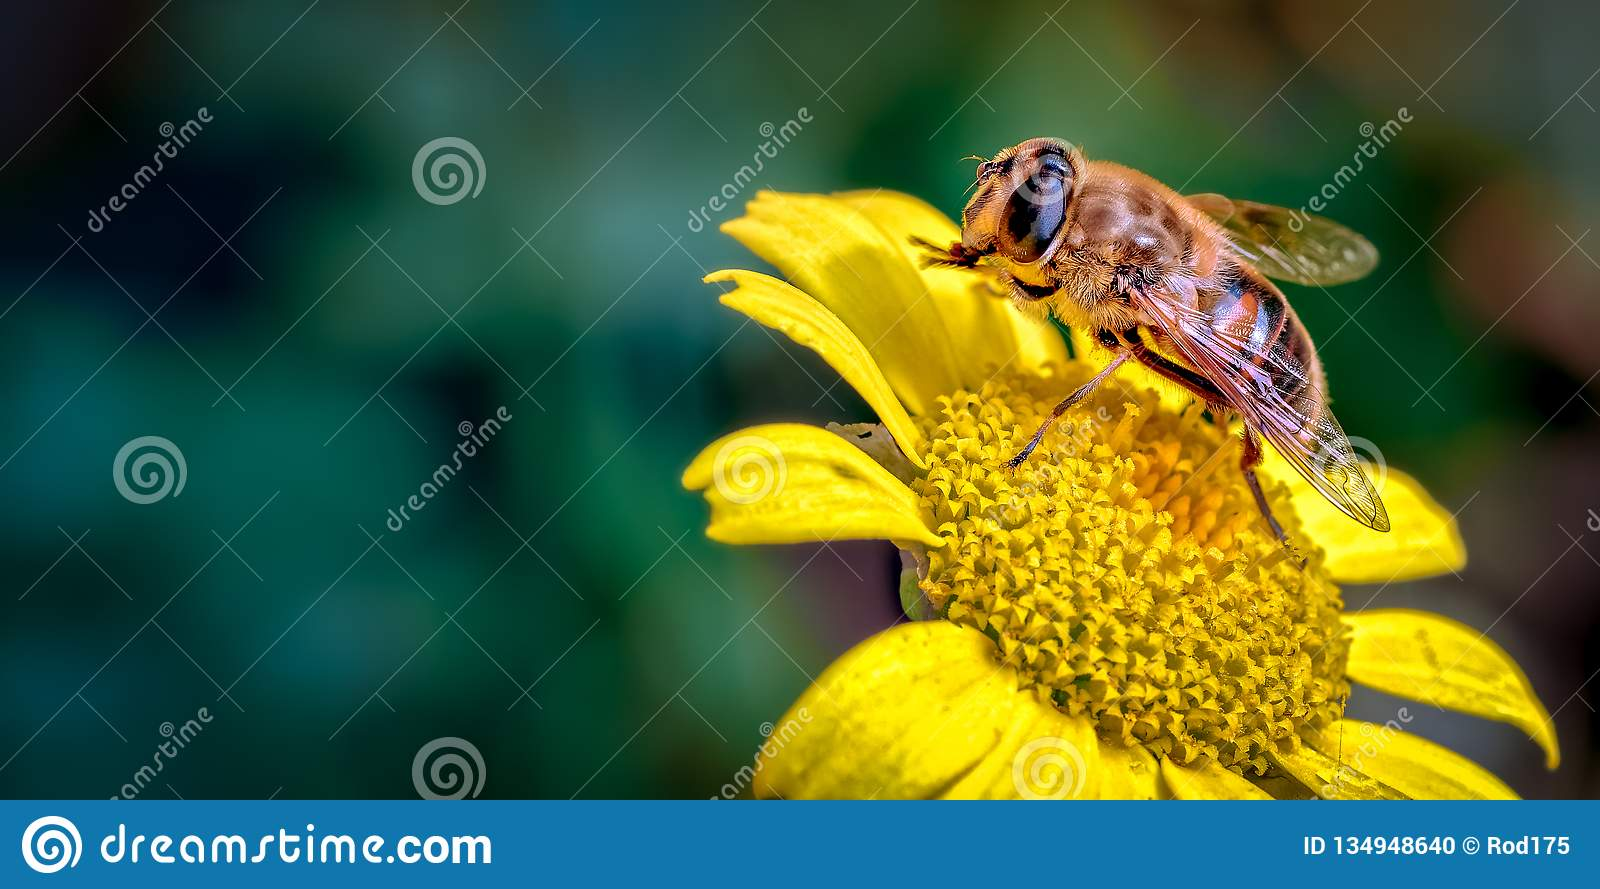 Drone-Fly, Eristalis tenax a bee mimic on Daisy Like Flower Cleaning its Front Legs